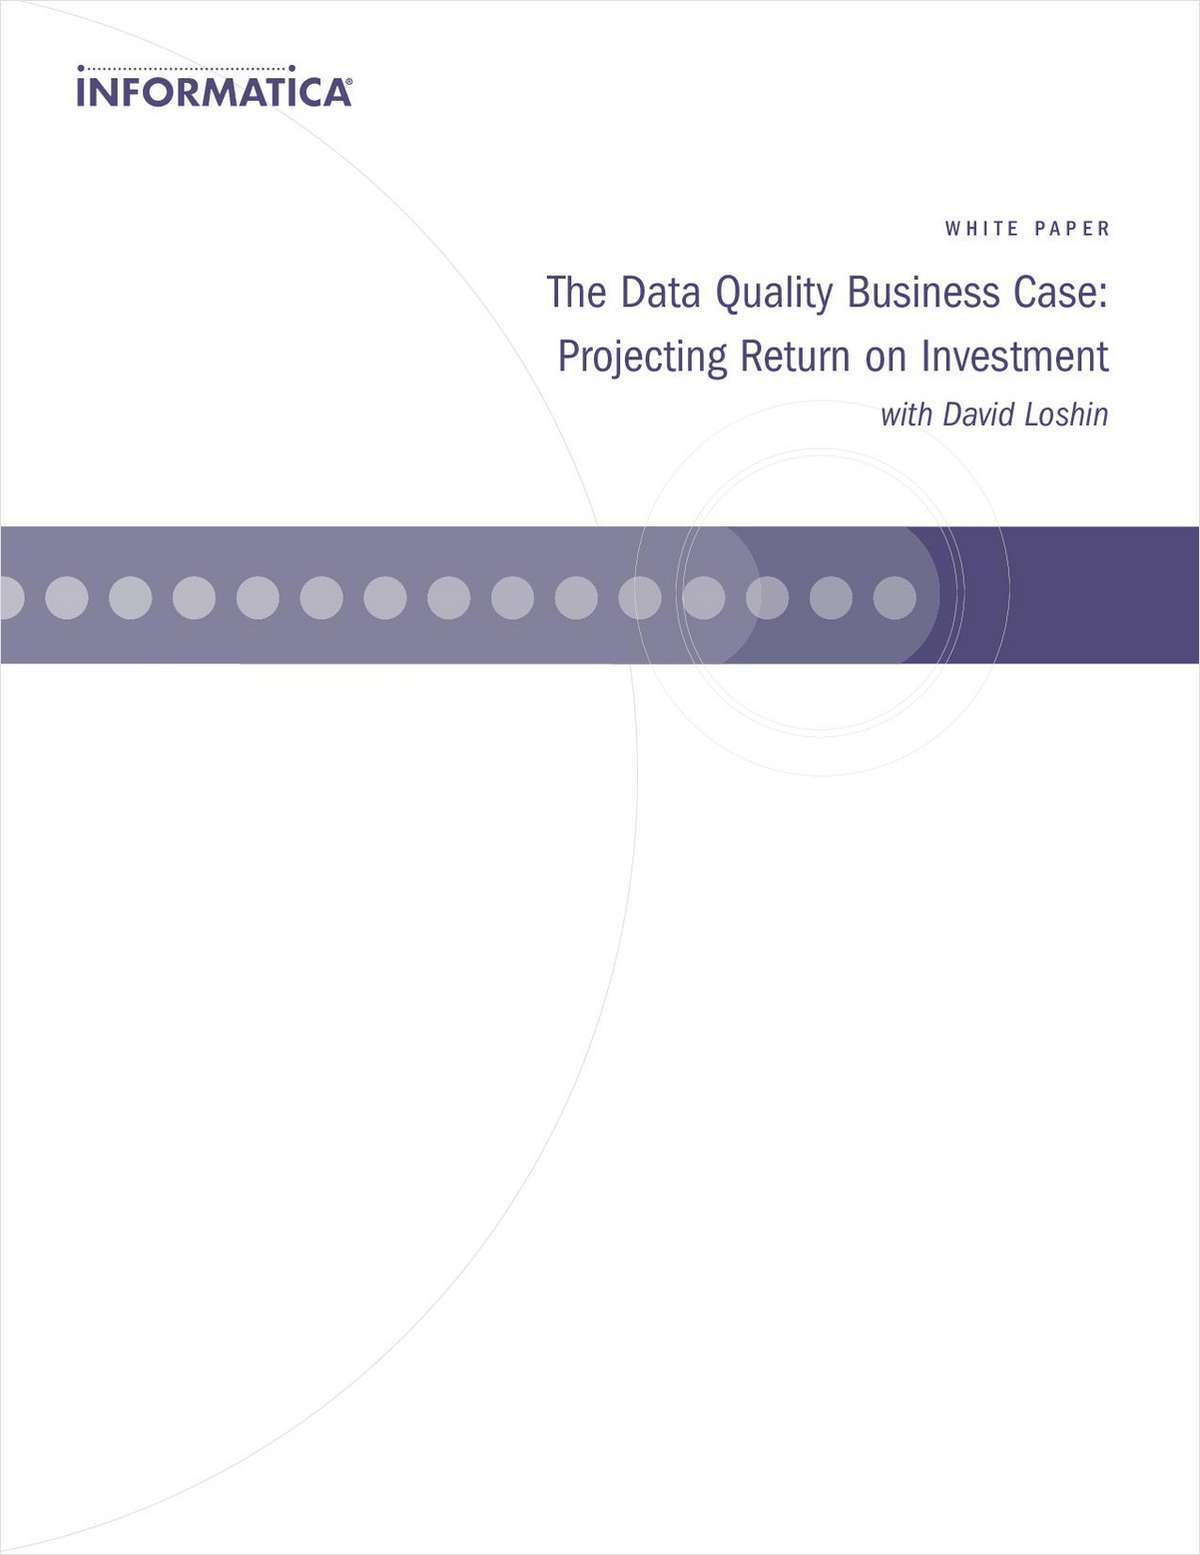 The Data Quality Business Case: Projecting Return on Investment